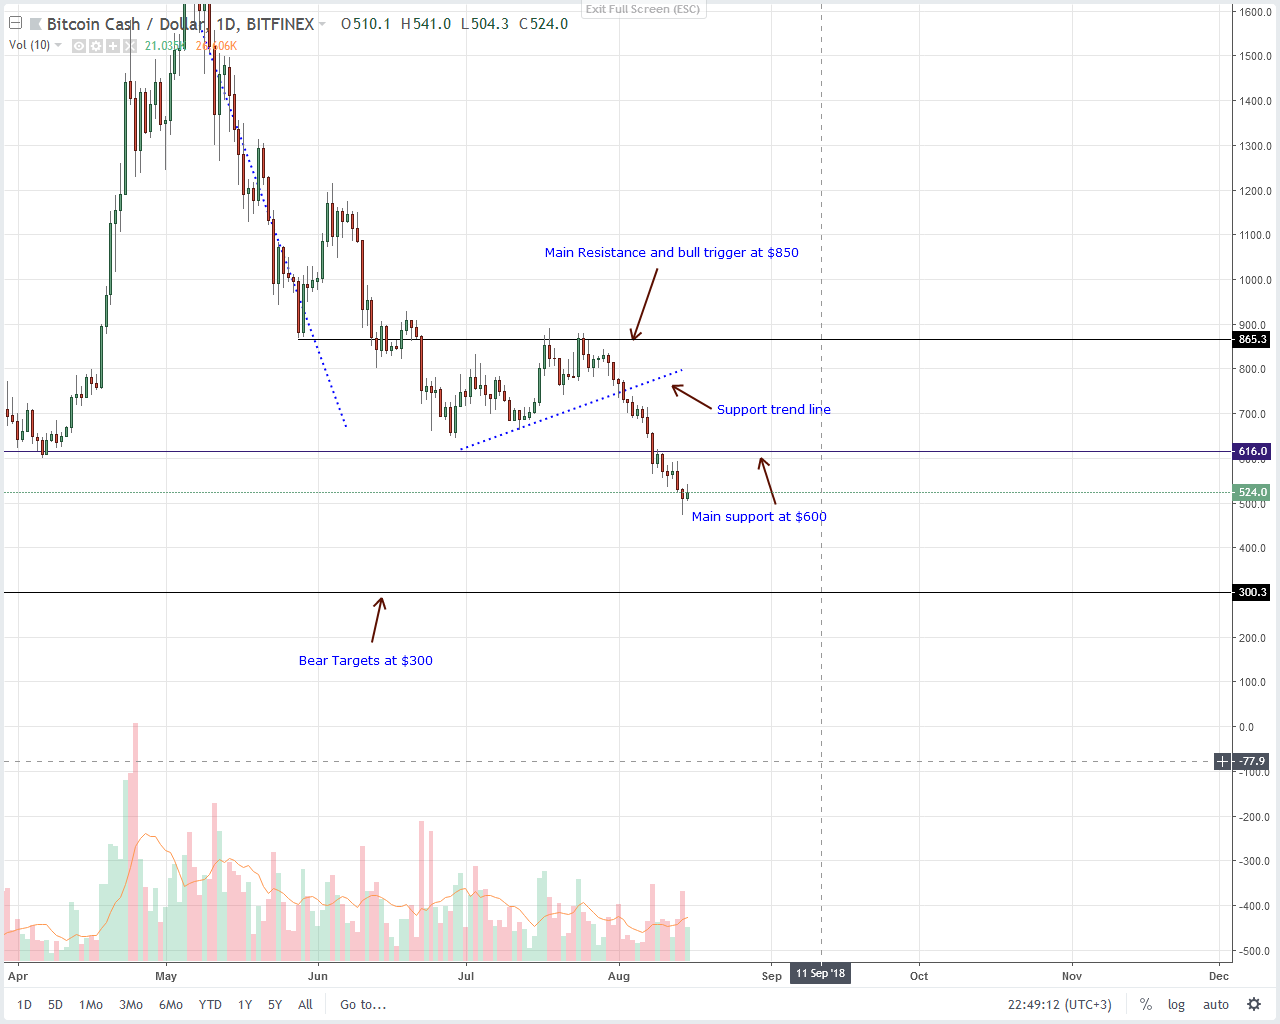 Bitcoin Cash (BCH) Technical Analysis